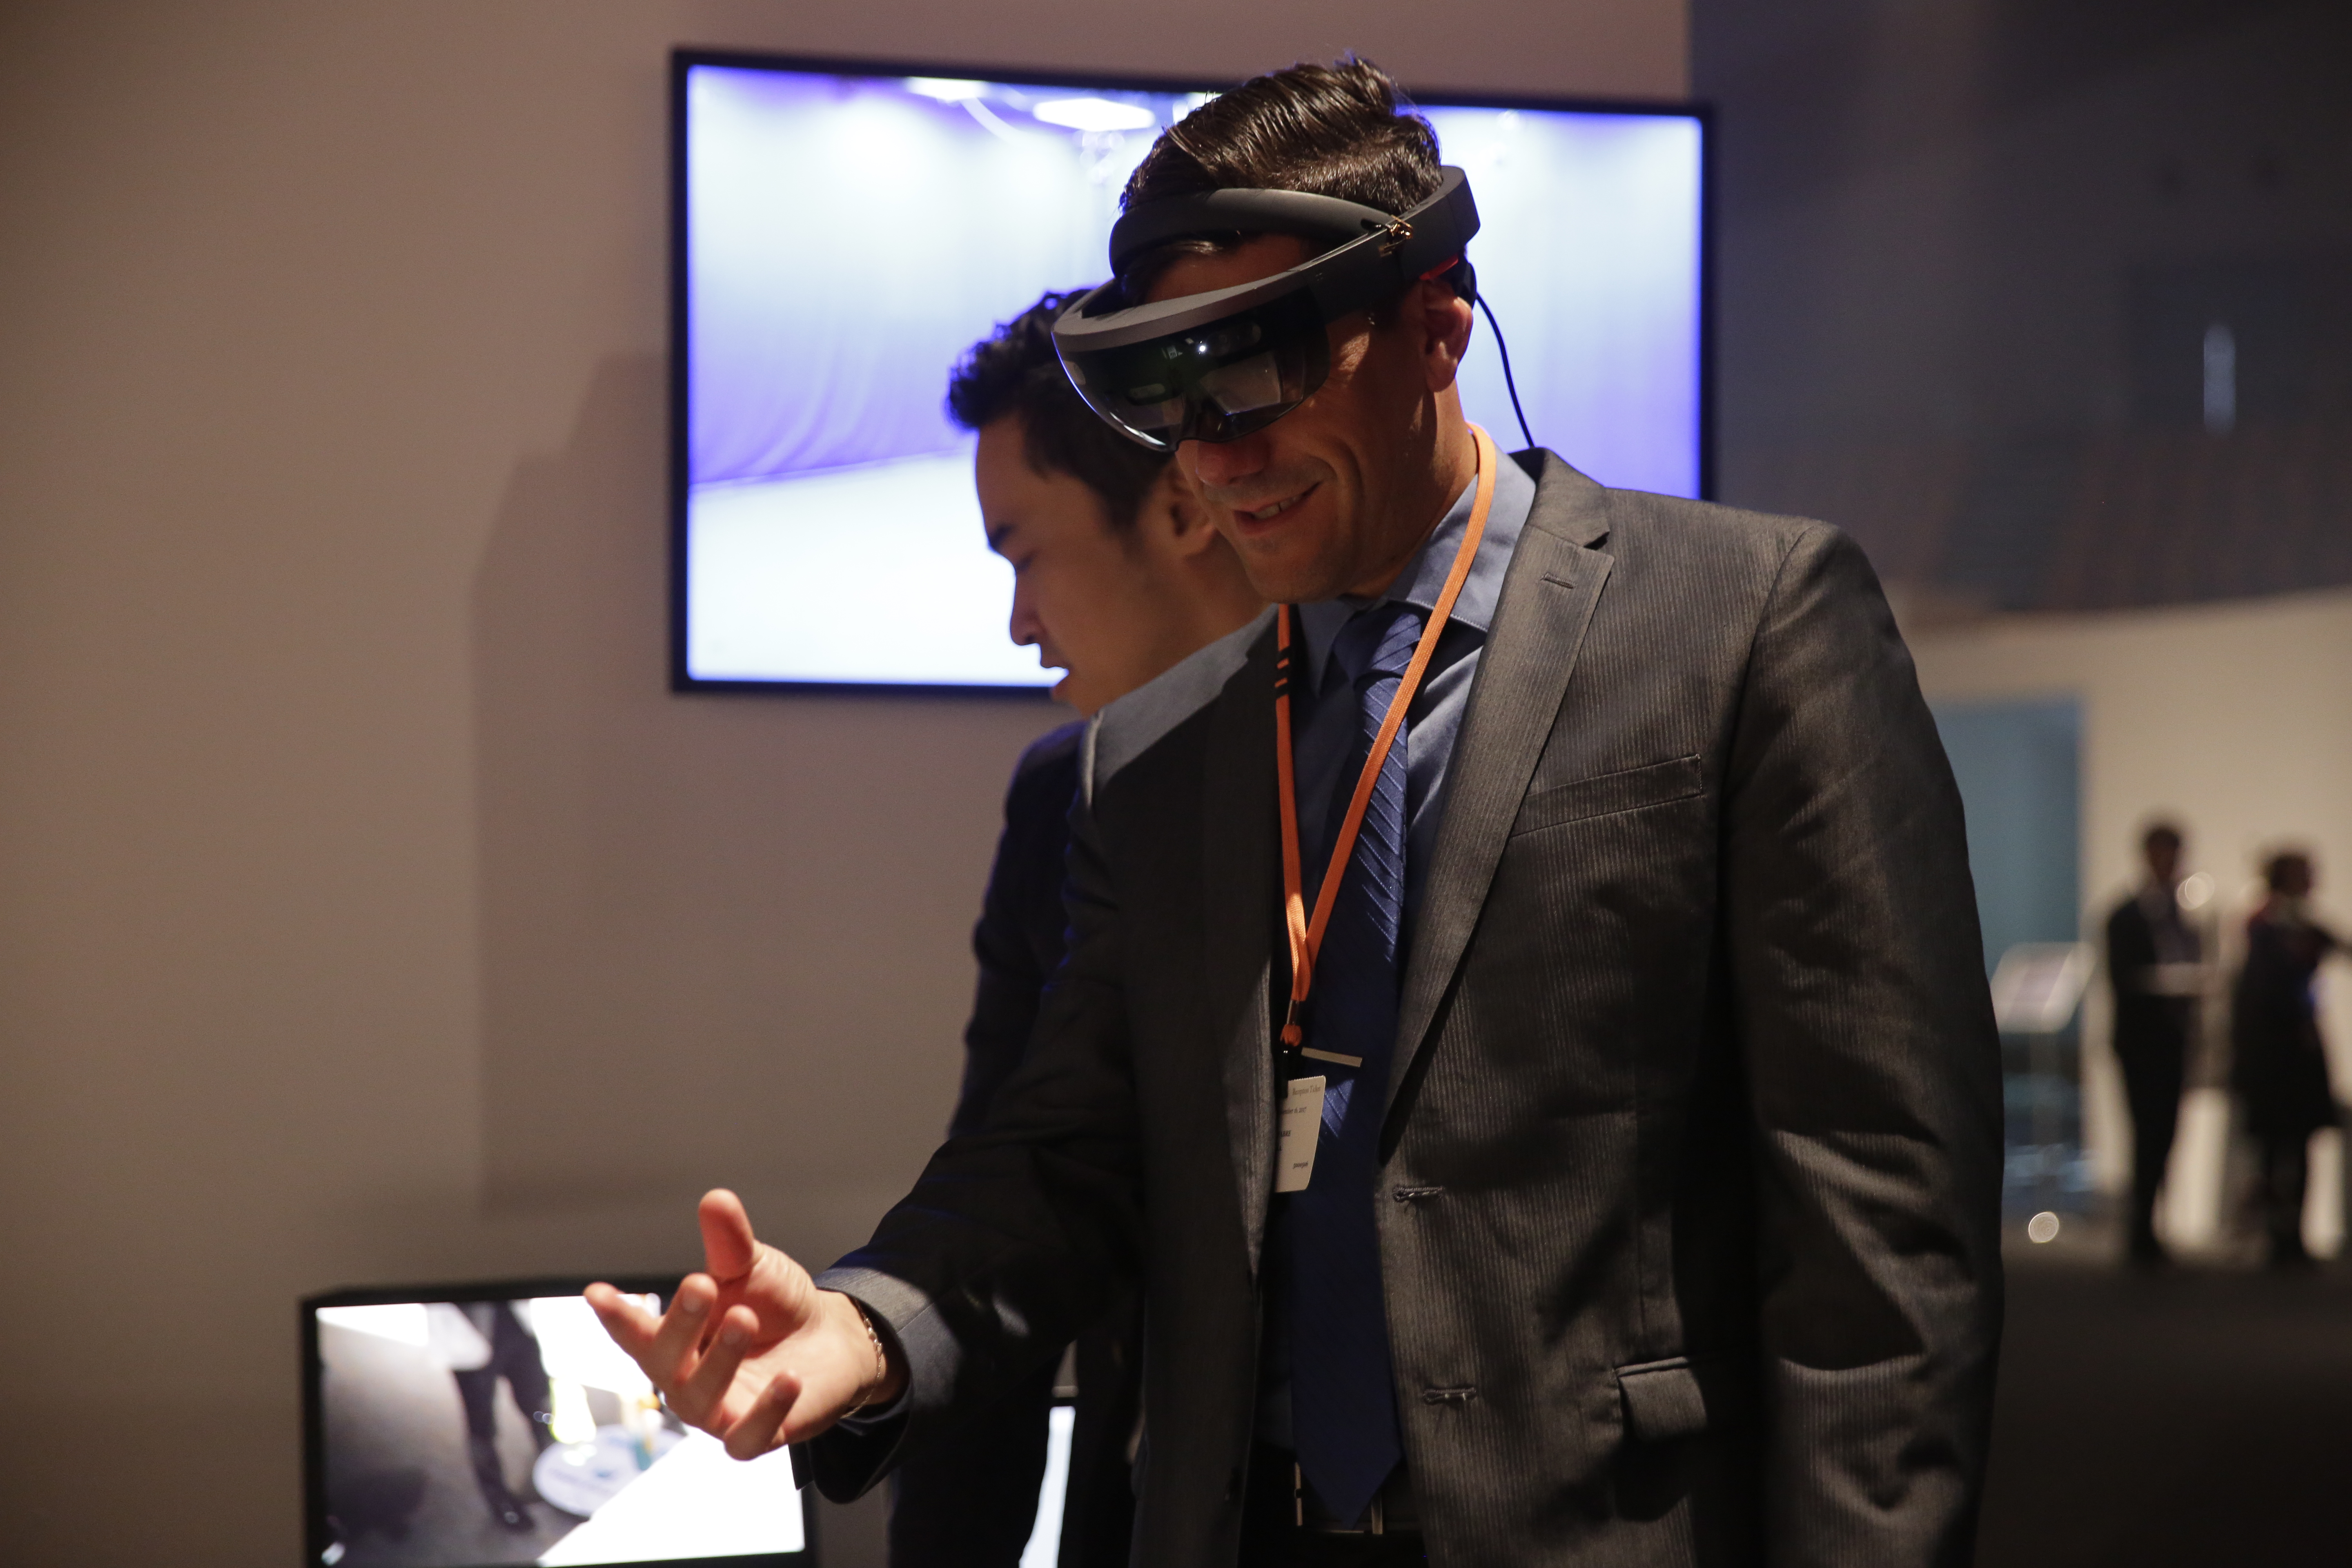 In the Future Zone, 3D Virtual Models created on Shima's SDS-ONE APEX3 were combined with the latest VR (virtual reality) technology in order to present a virtual showroom. Four rooms were available for experiencing the virtual showroom using VR goggles. (c) SHIMA SEIKI.